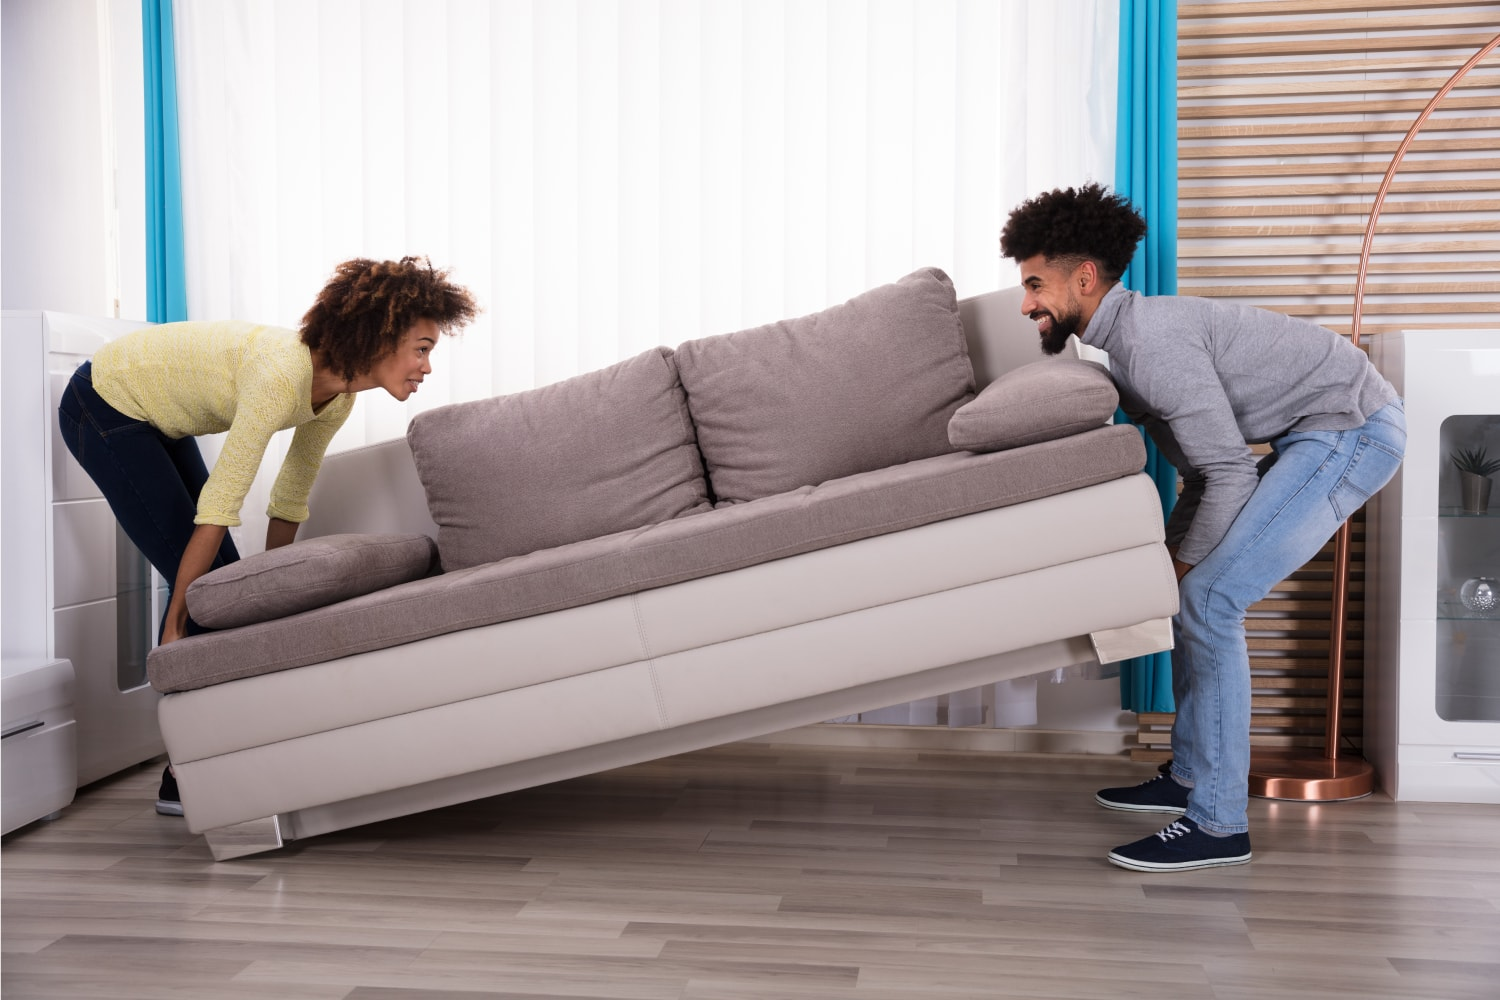 buy-furniture-online-couple-min